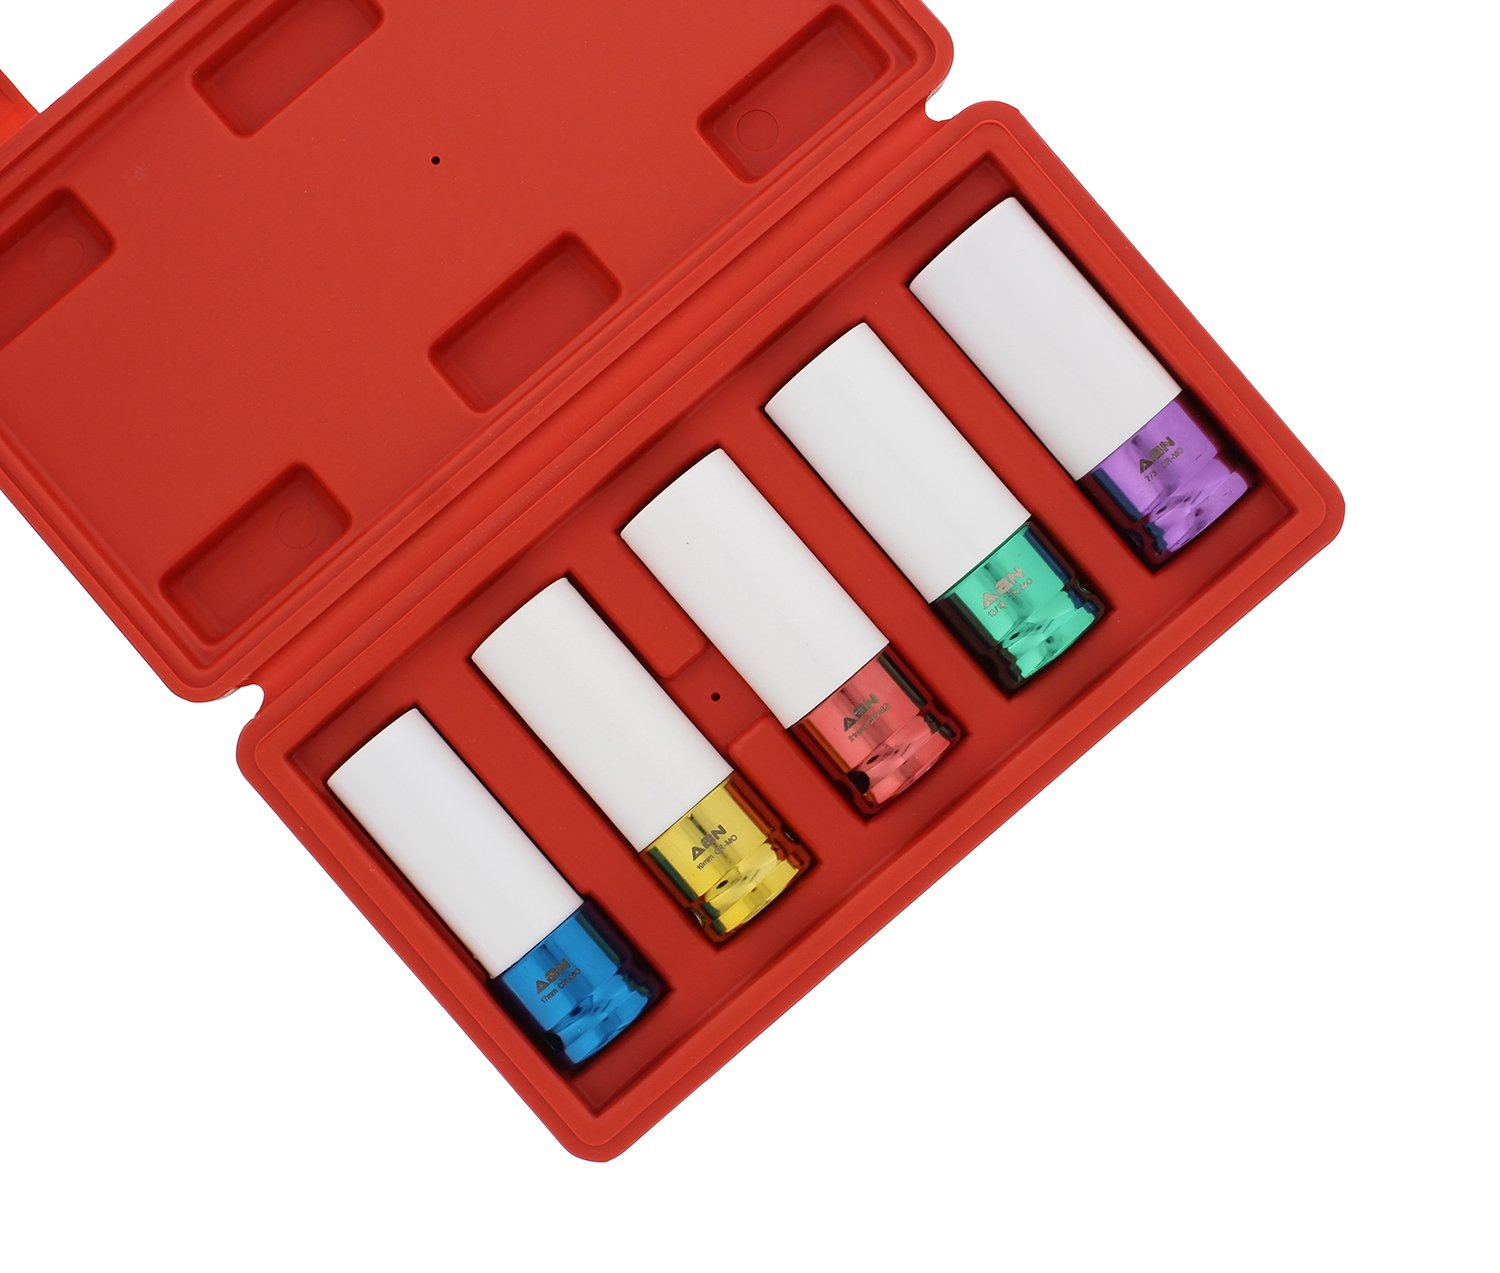 ABN 1/2'' Inch Impact Drive Lug Nut Socket 5-Piece Set - Non-Marring, Color-Coded, Thin-Walled Wheel Rim Protectors